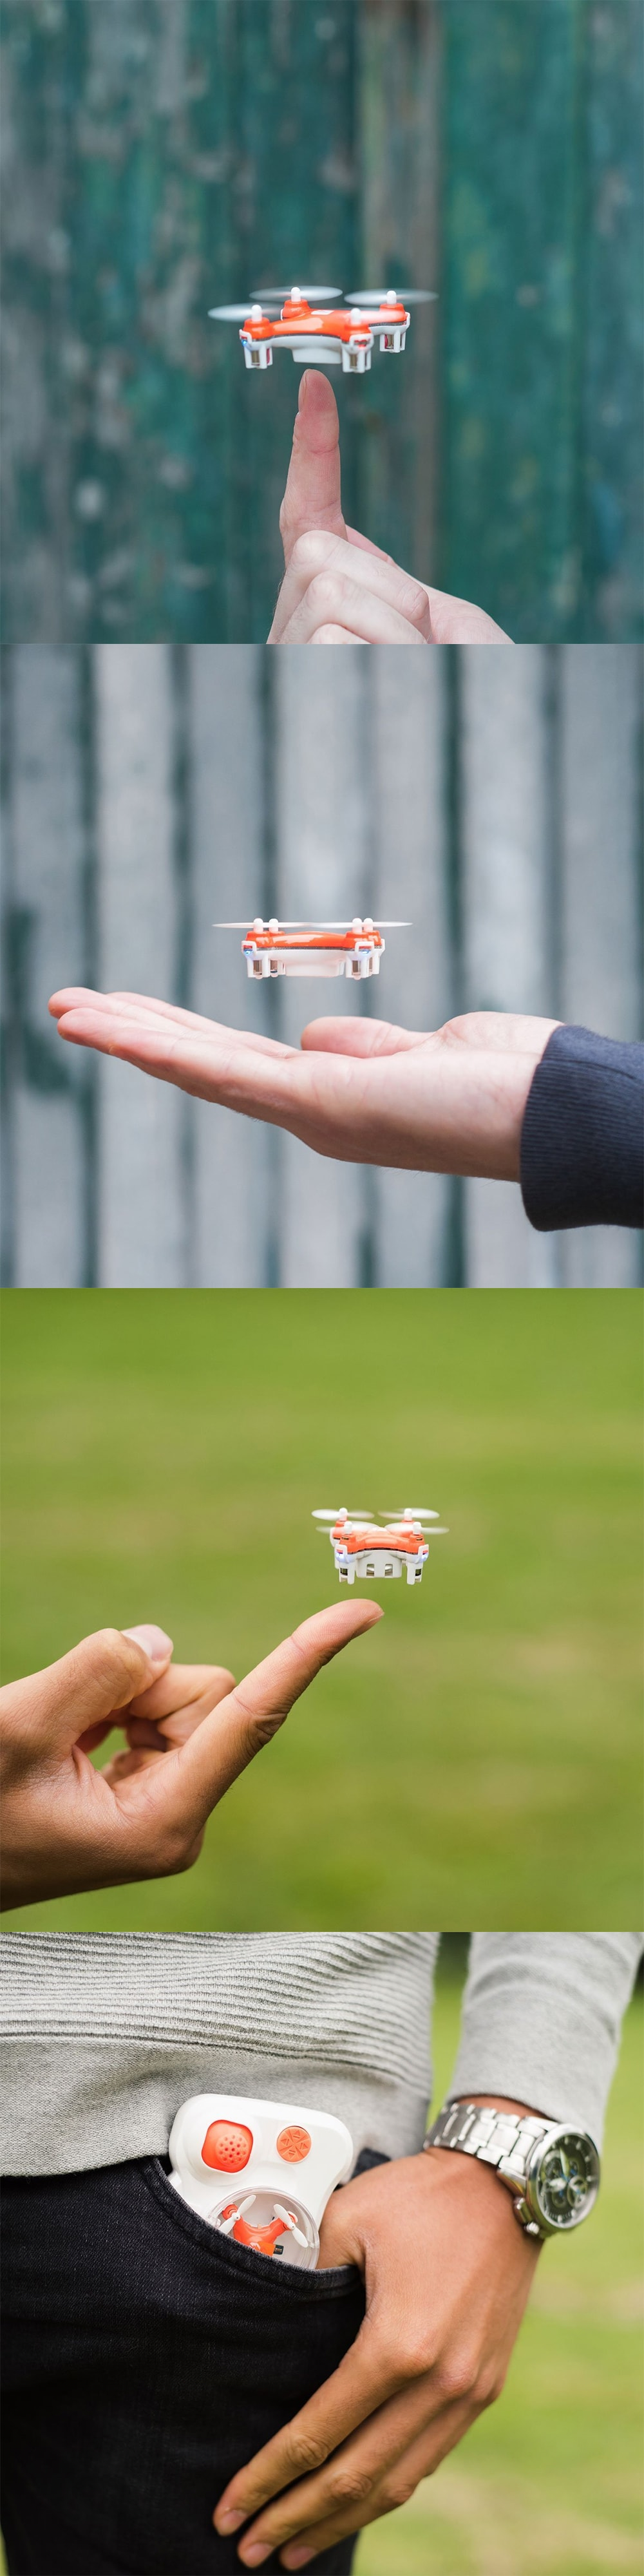 Mini Pocket Drone The Smallest Drone in The World